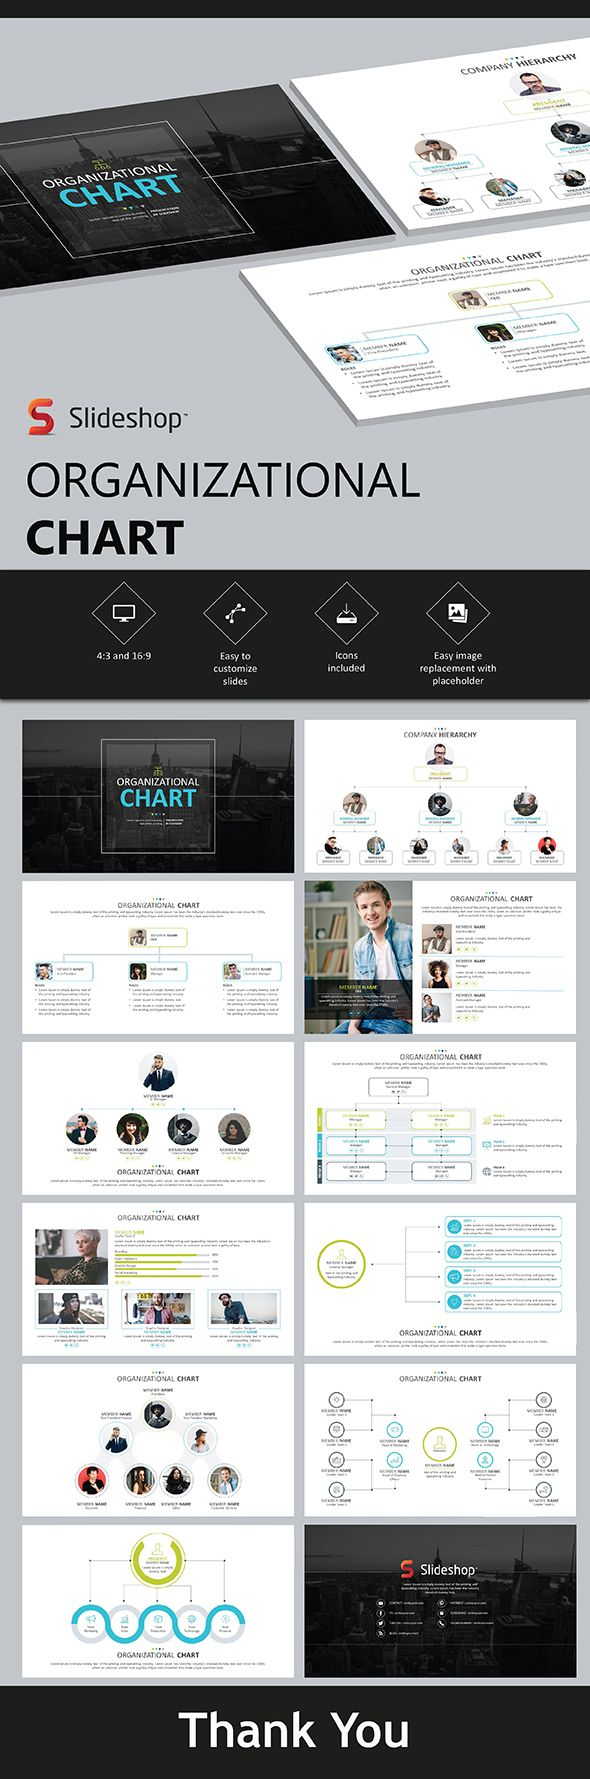 Organizational Chart   Pinterest   Presentation templates  Chart and     Organizational Chart   PowerPoint Templates Presentation Templates Download  here